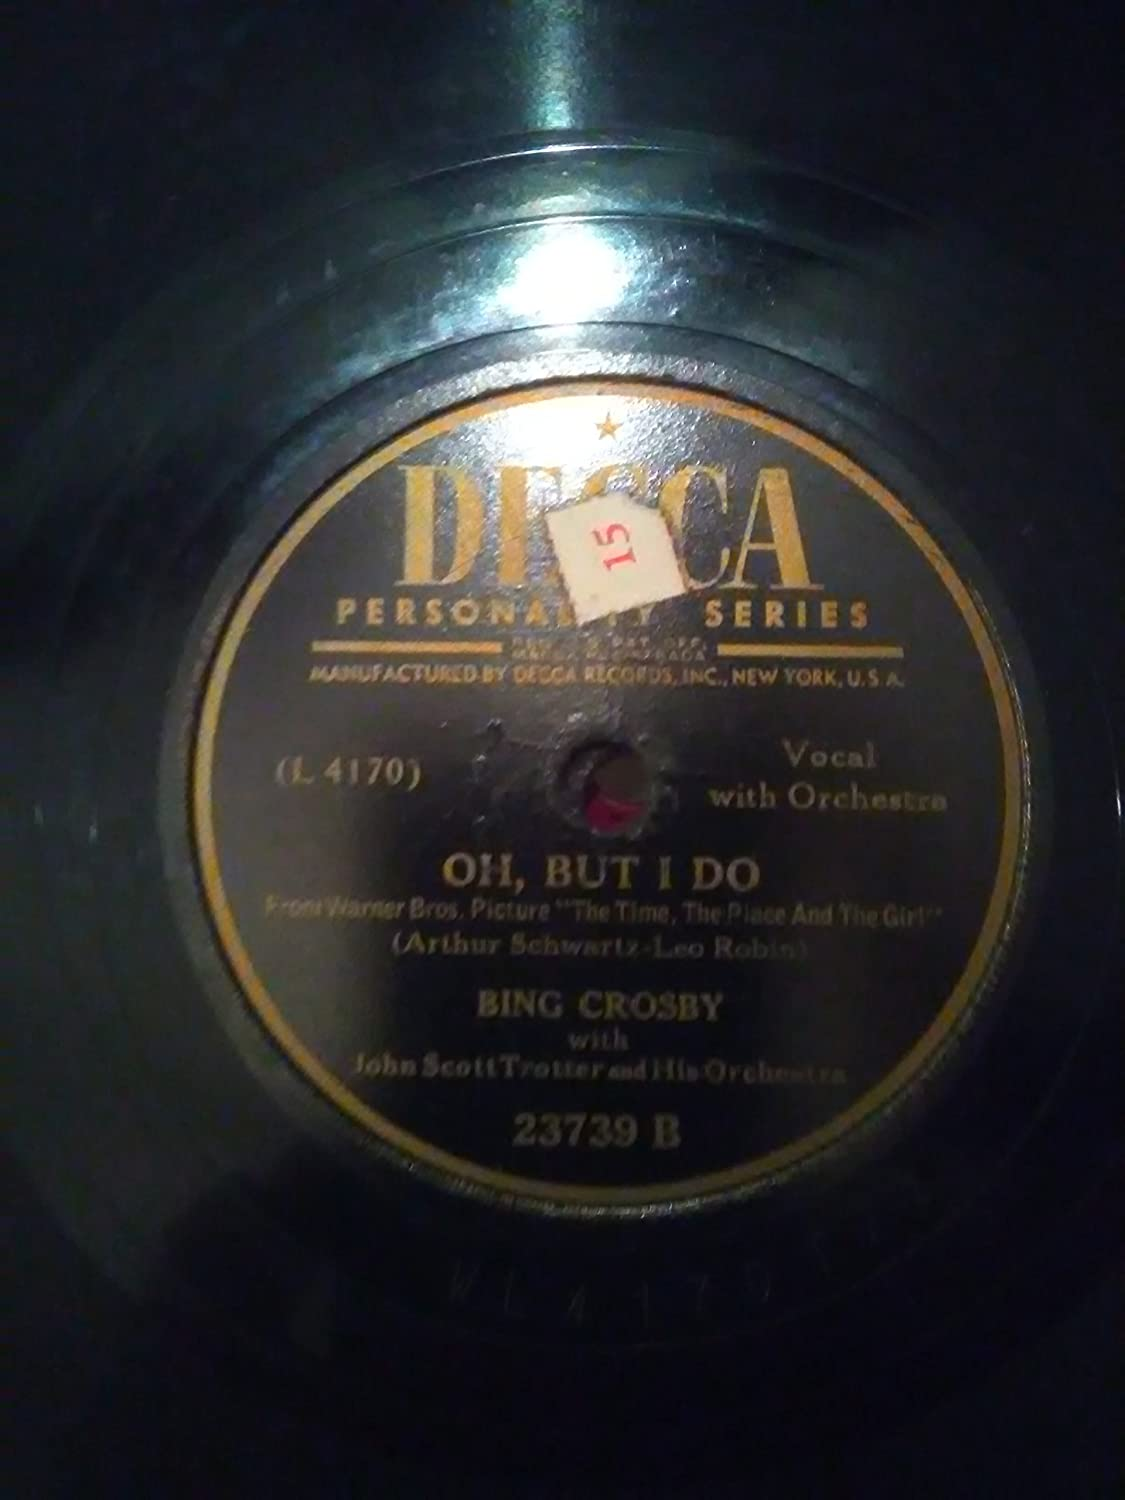 Bing Crosby - Oh, But I Do/A Gal In Calico, 78 RPM - Amazon